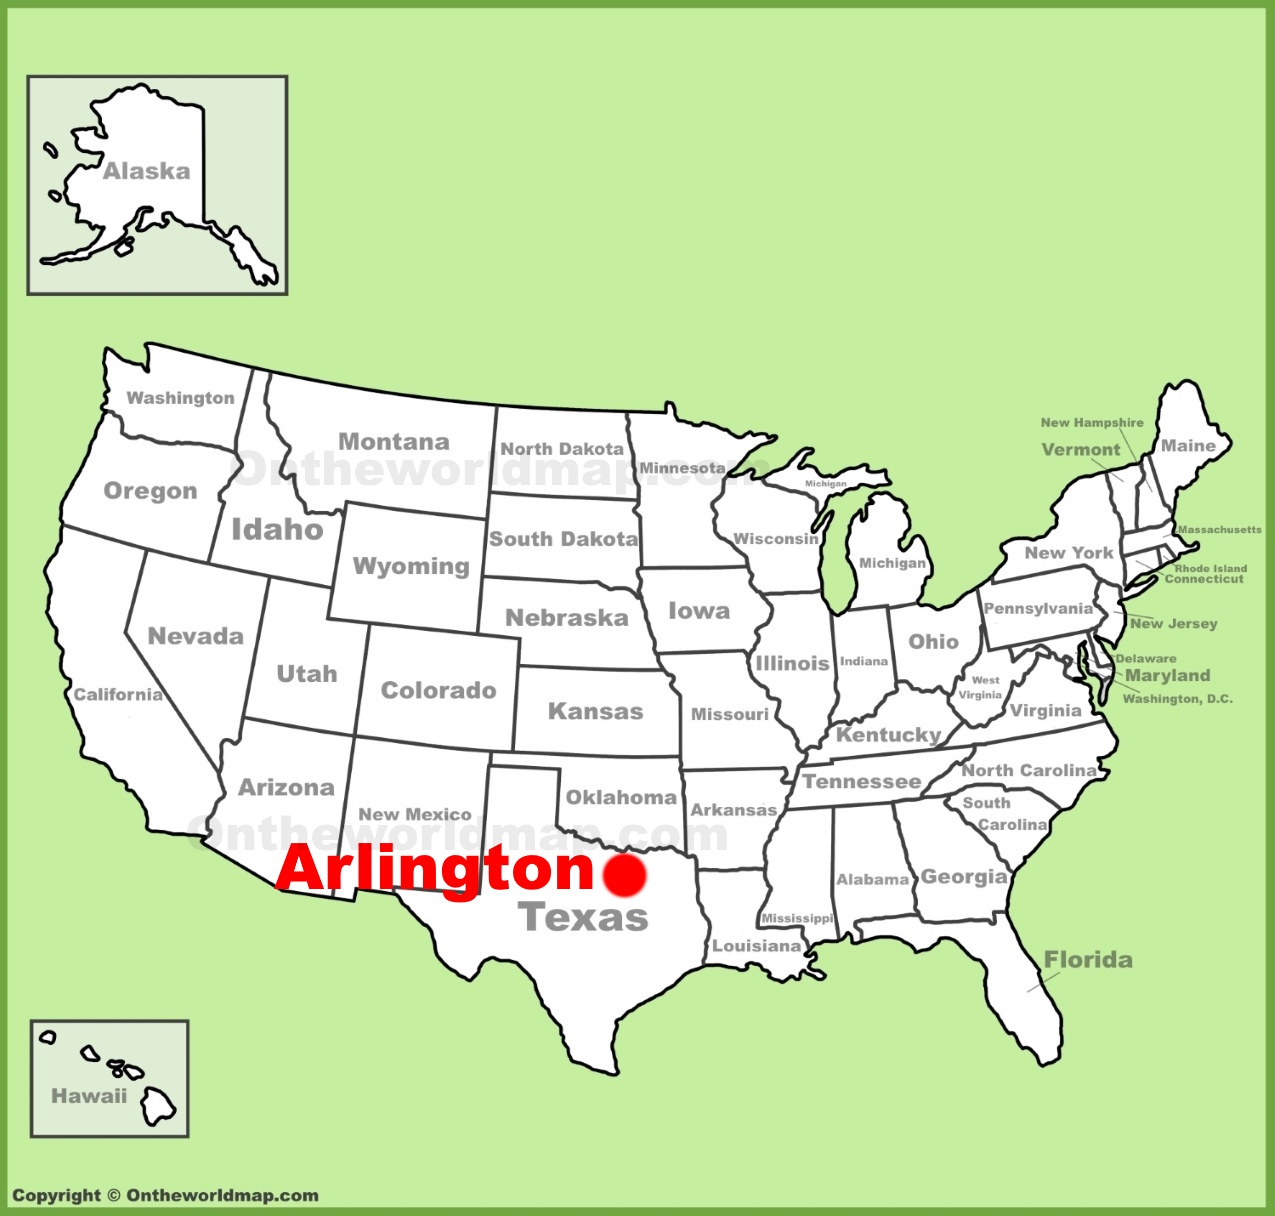 Arlington Texas Location On The U S Map